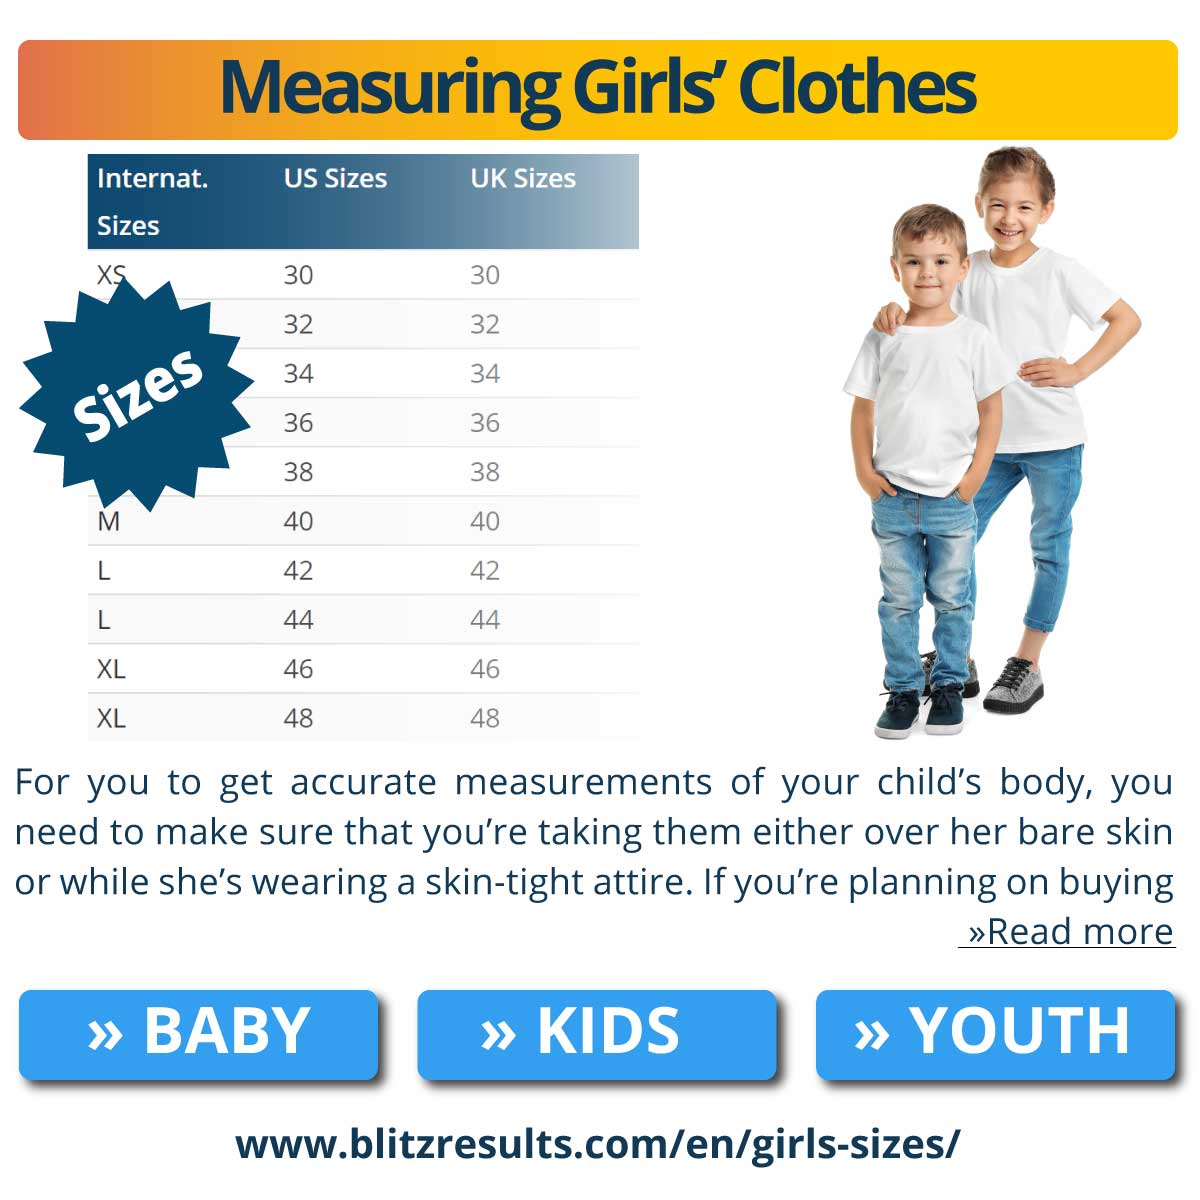 Measuring Girls' Clothes